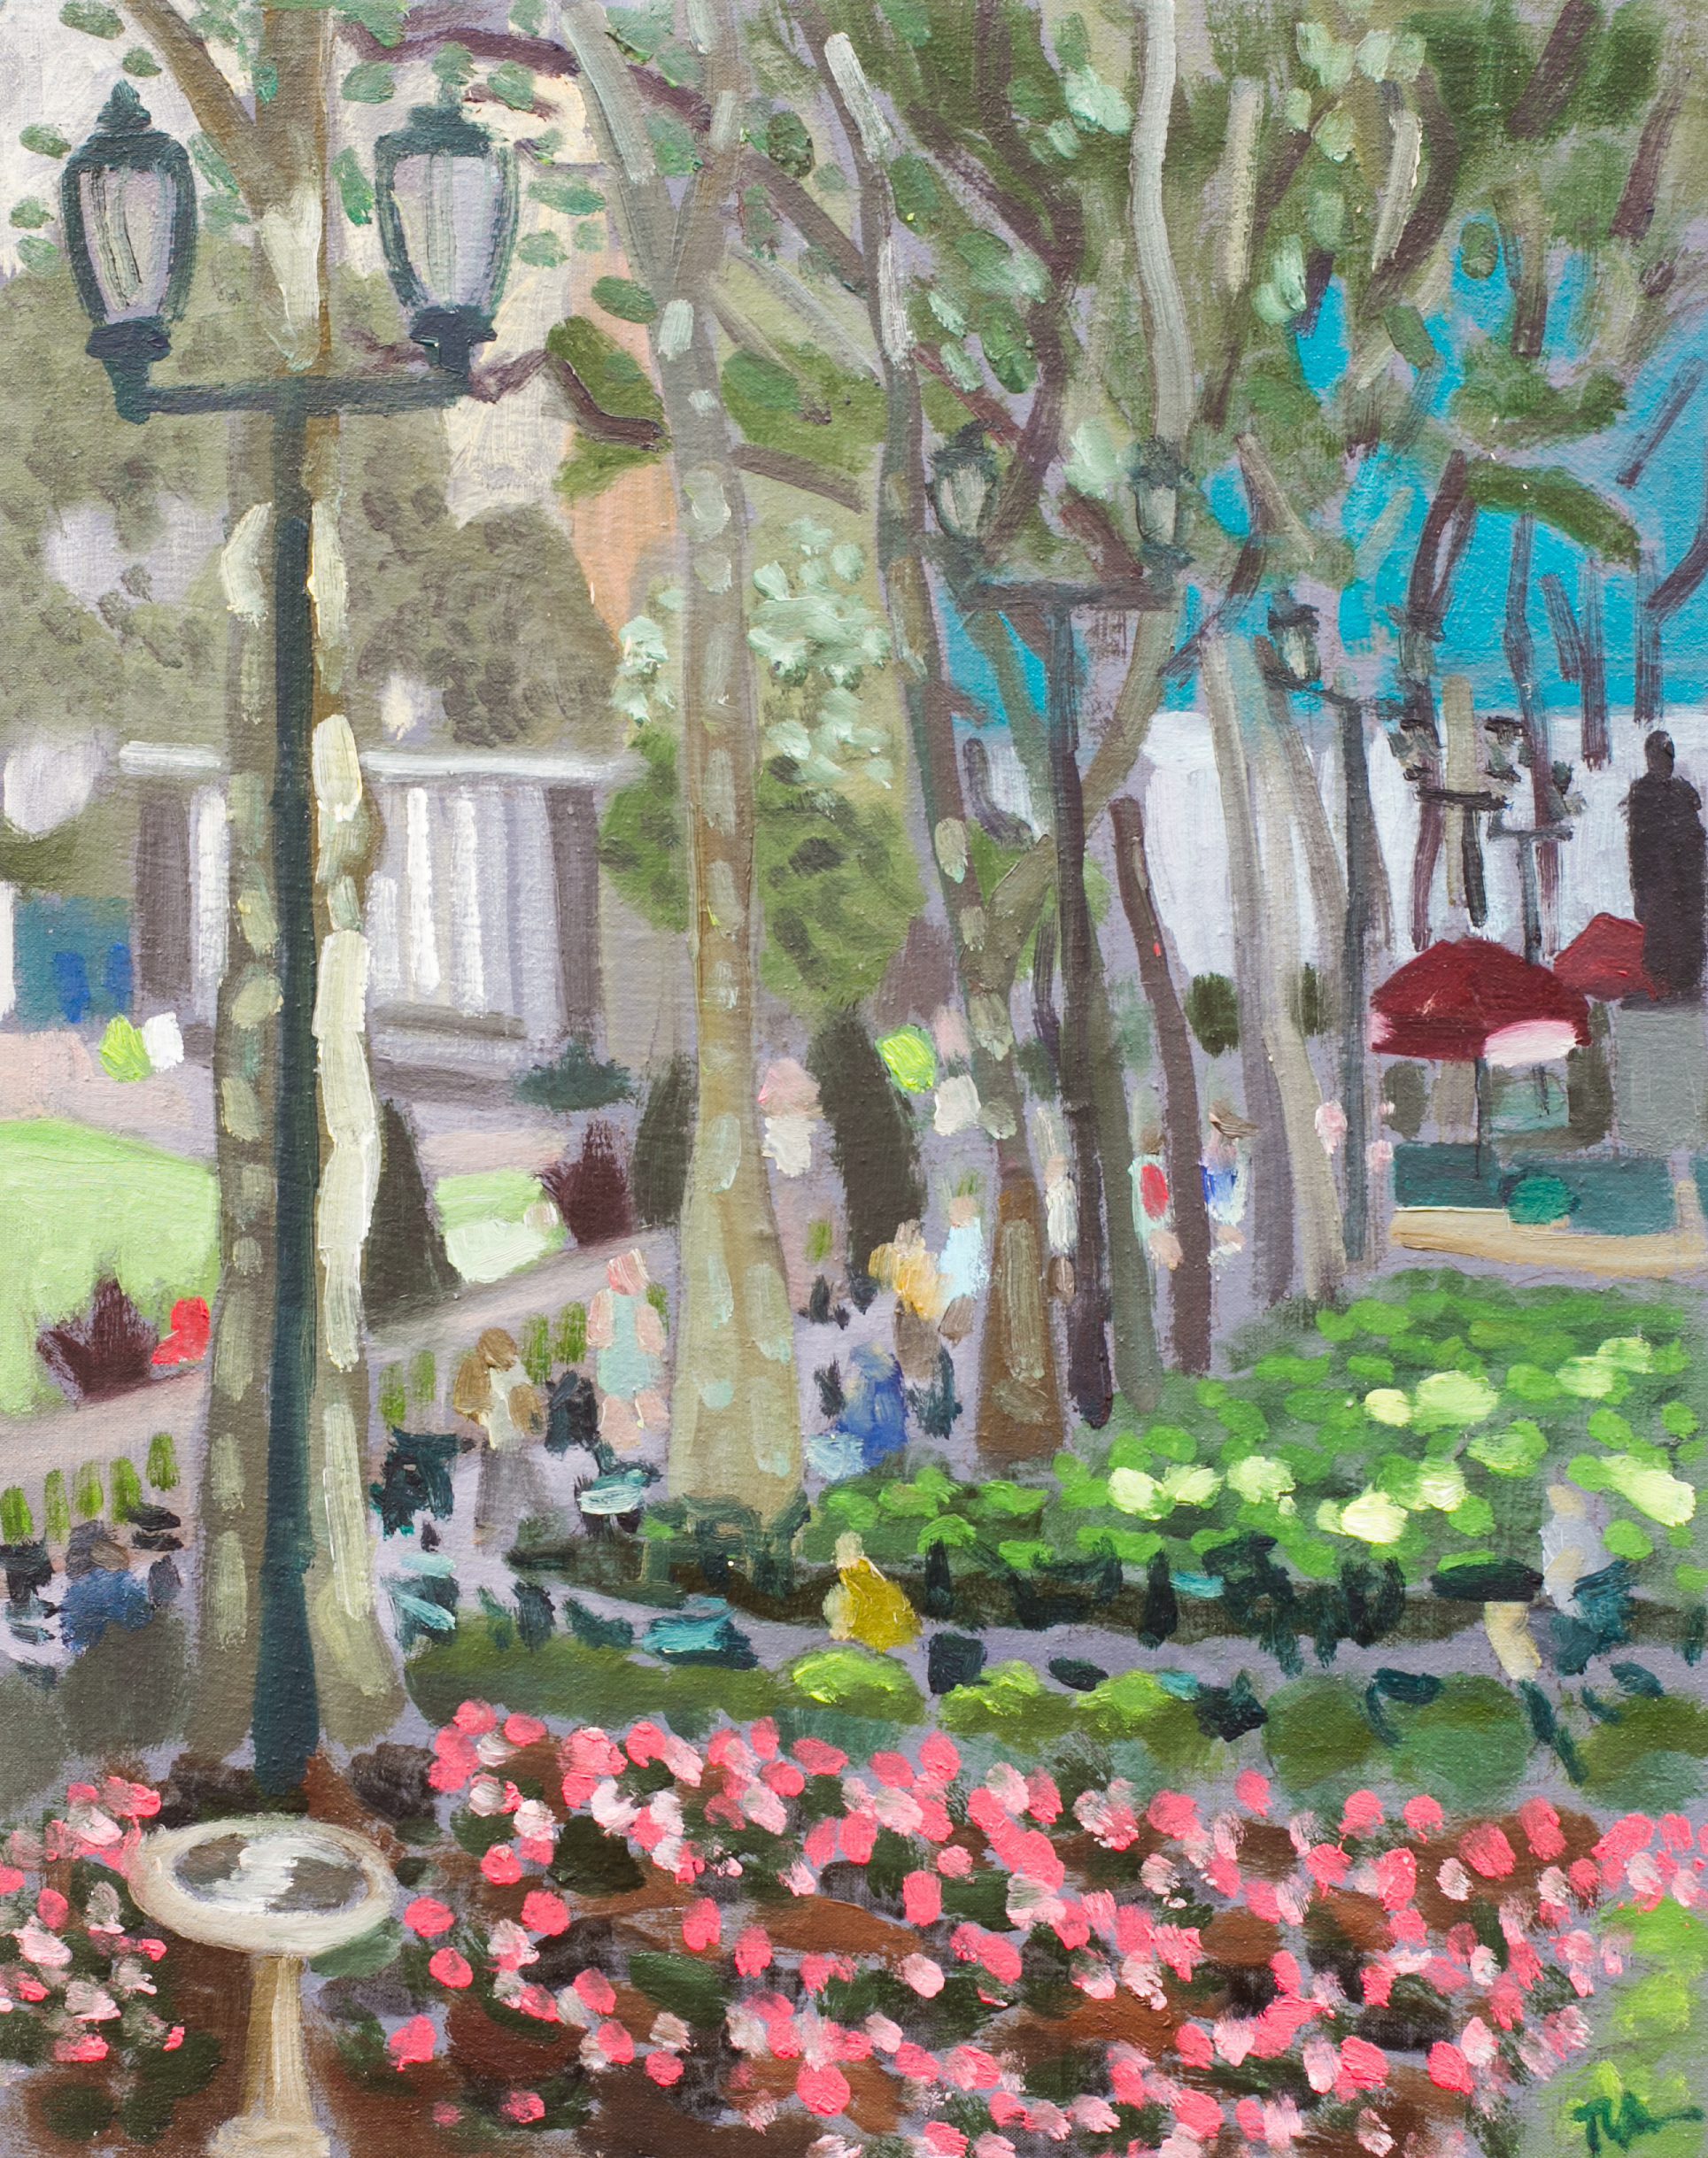 "Bryant Park #26 - July 13, 2016 - 12"" x 9 1/2"" - oil on panel"